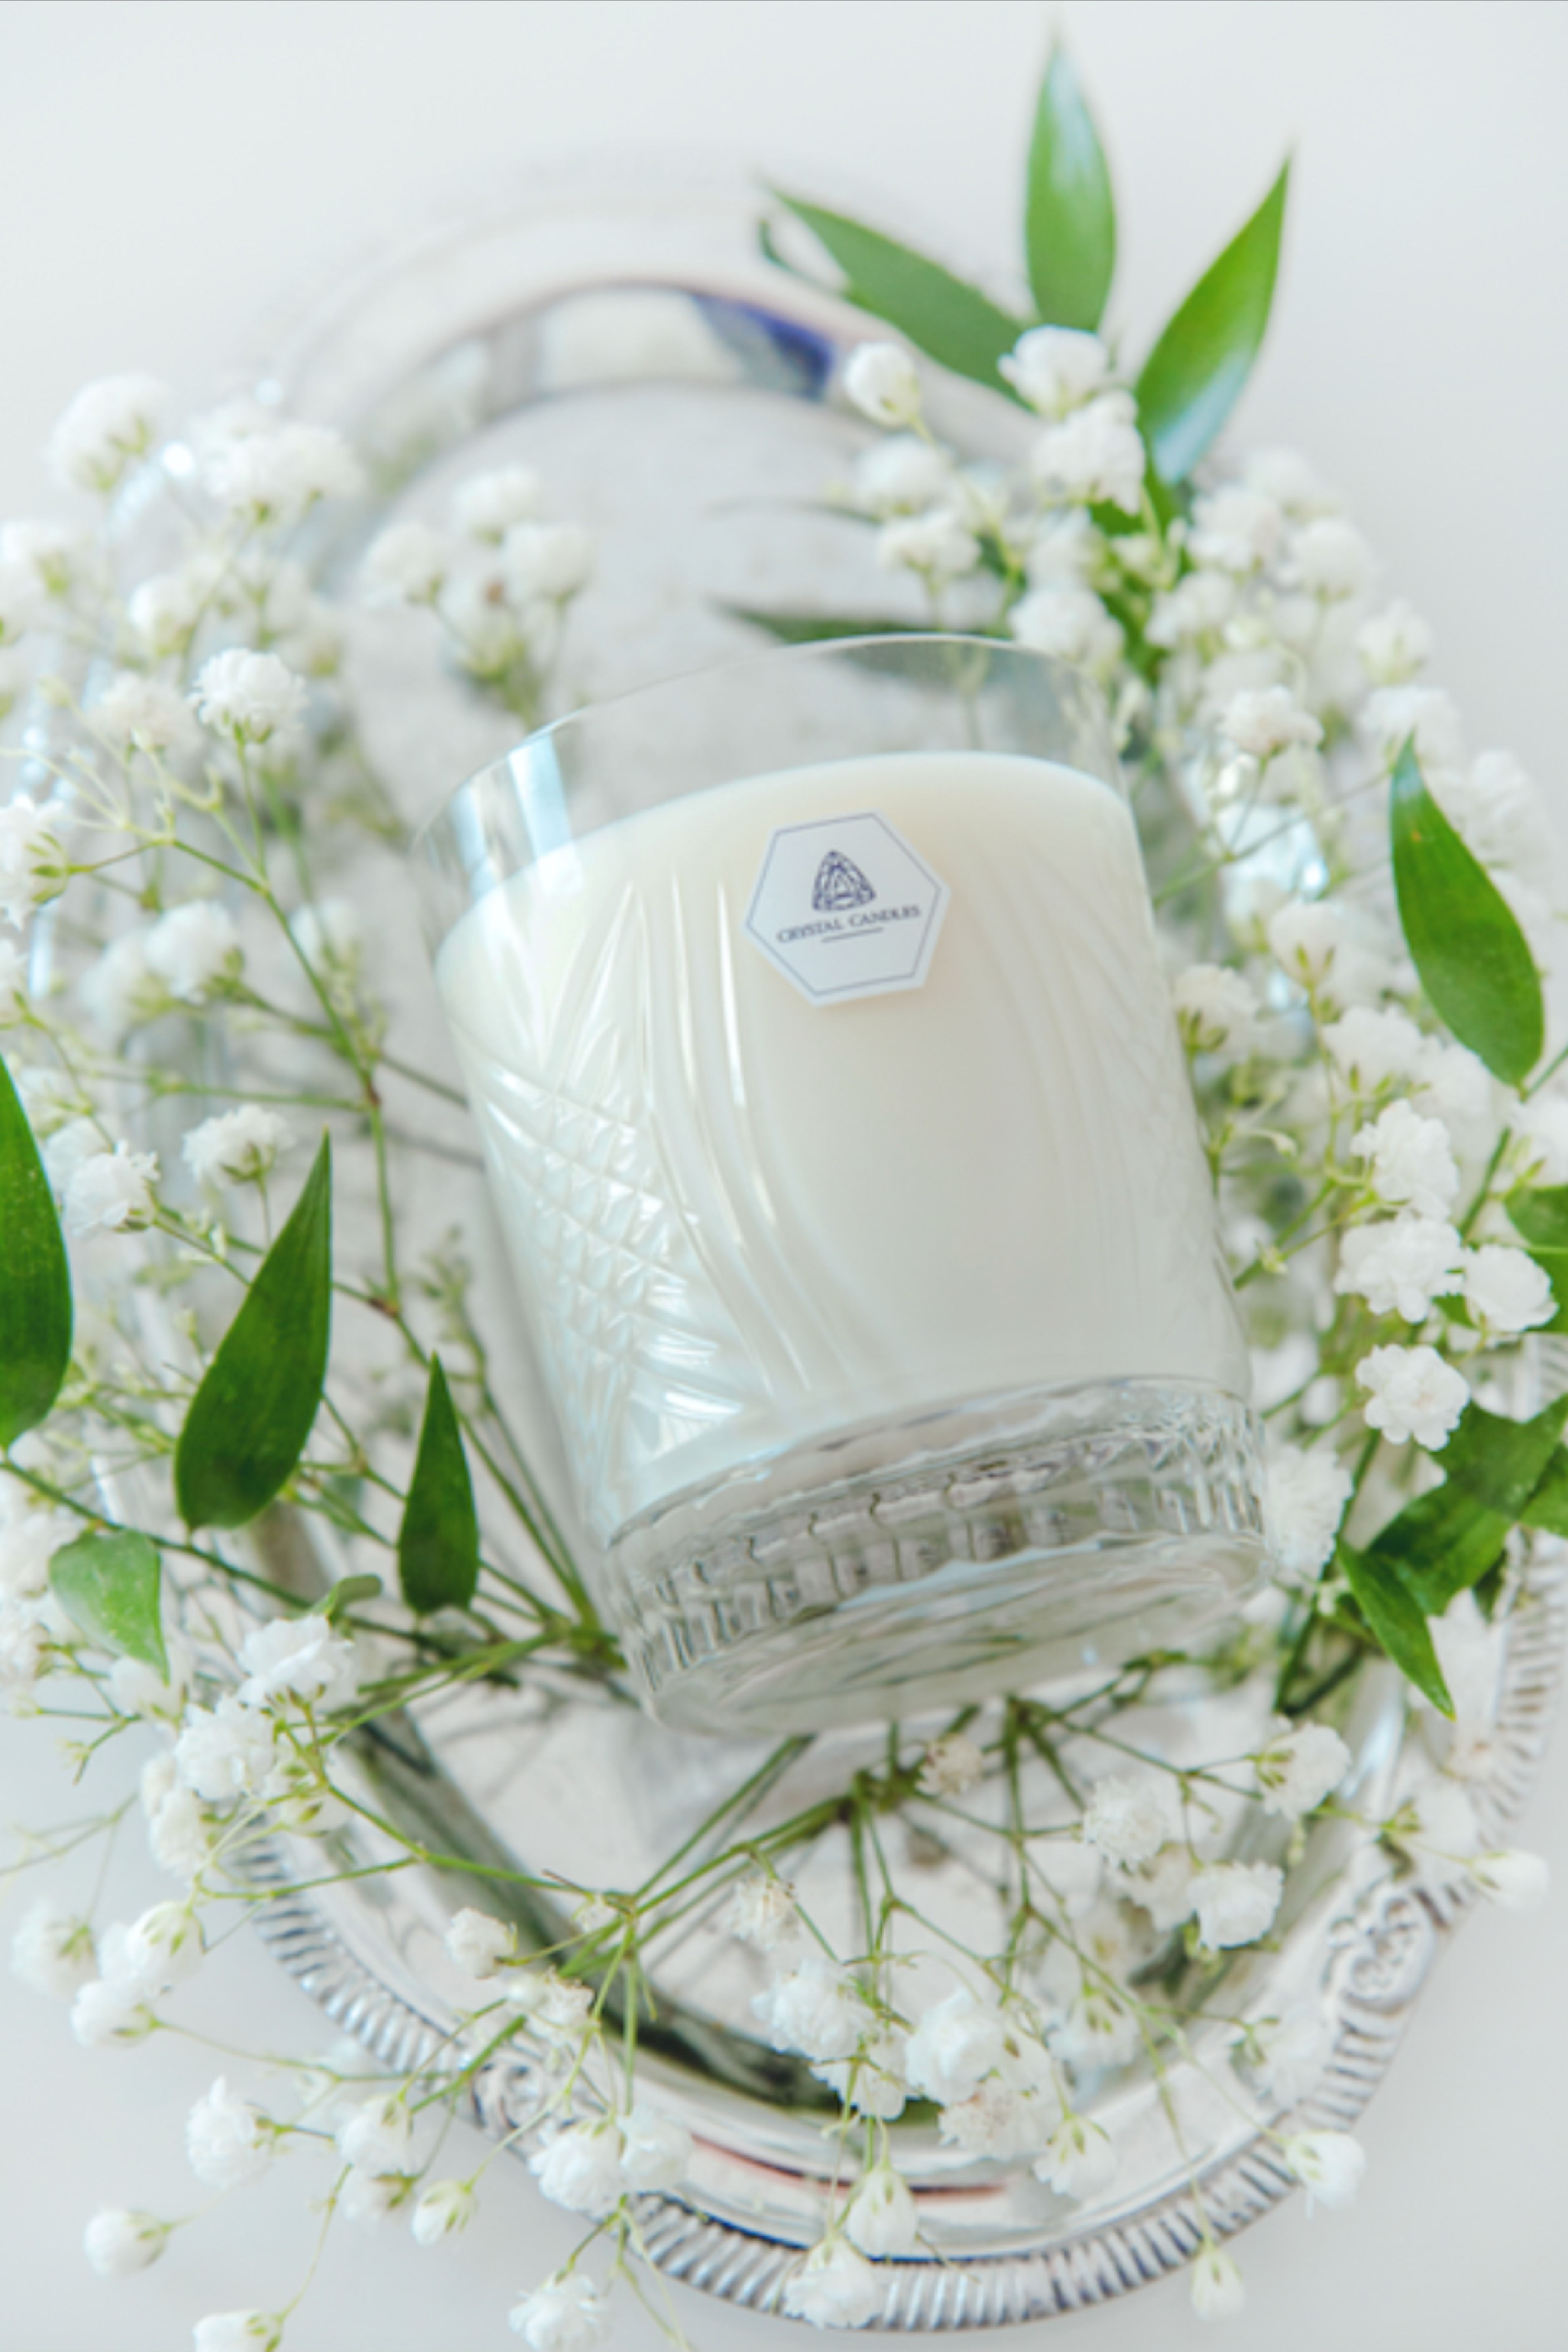 How to make essential oils candle DIY Essential oil